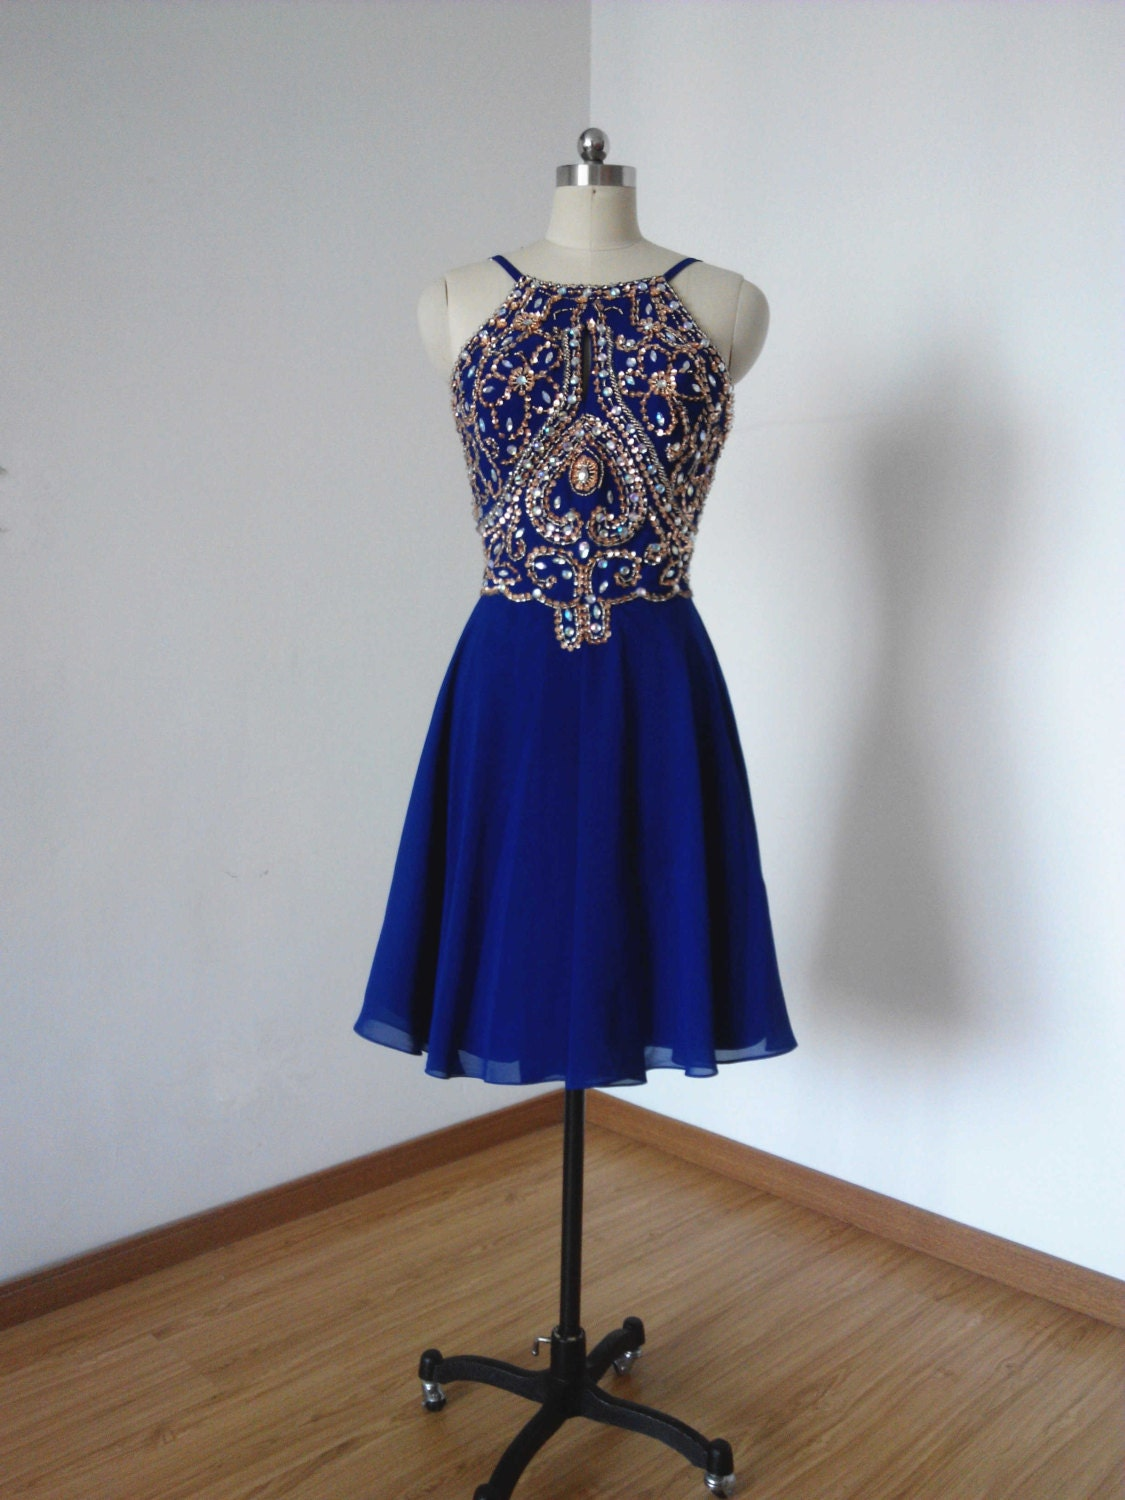 Blue chiffon dress - Etsy